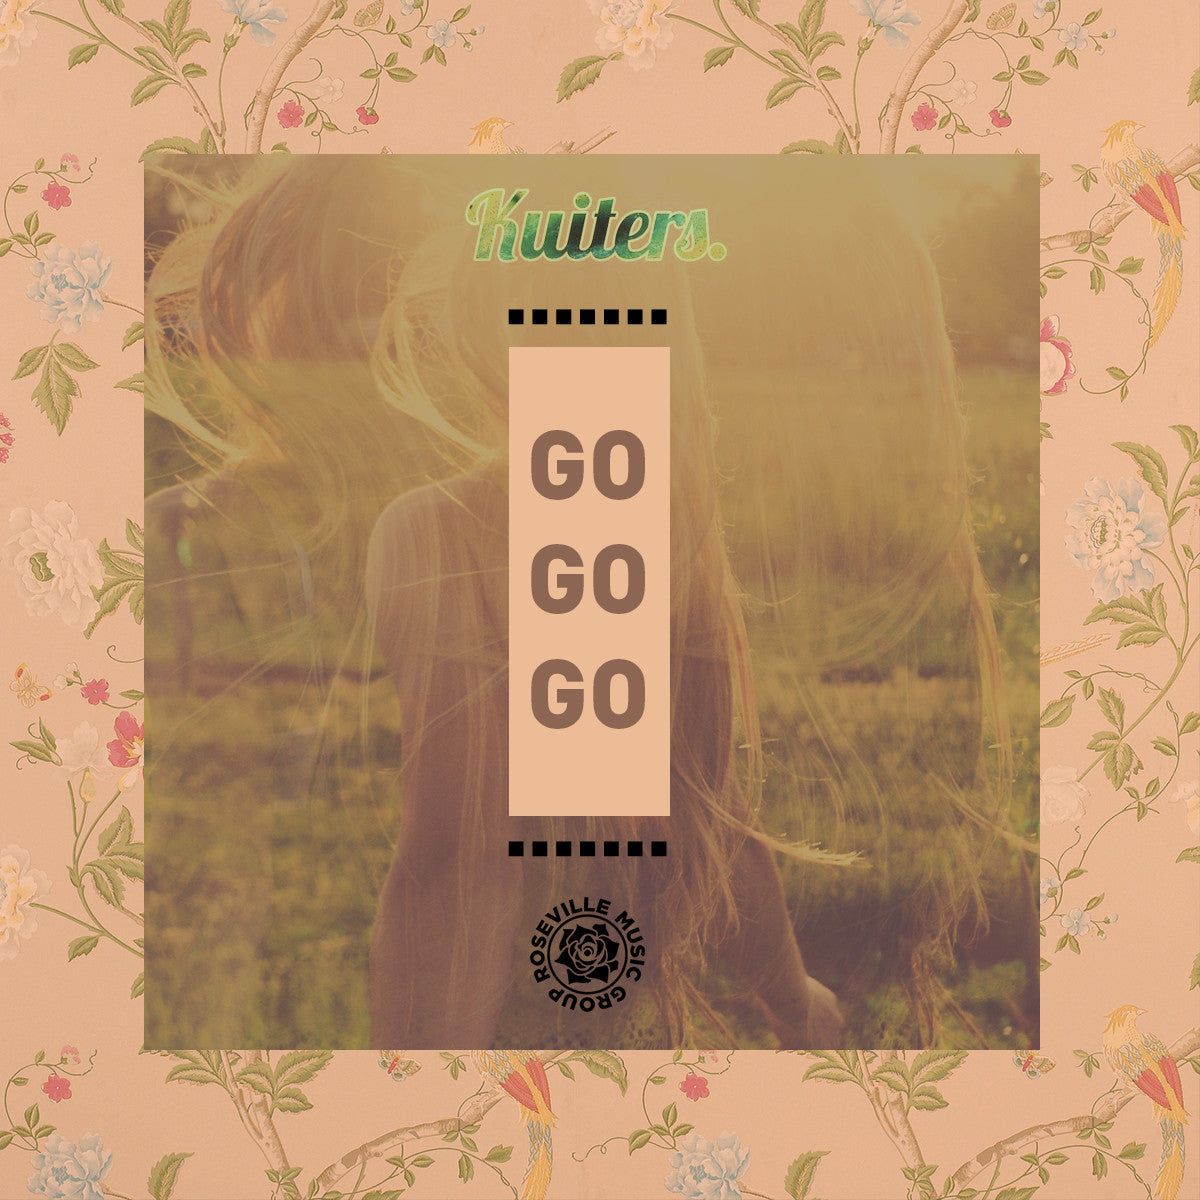 SINGLE - Kuiters - Go Go Go